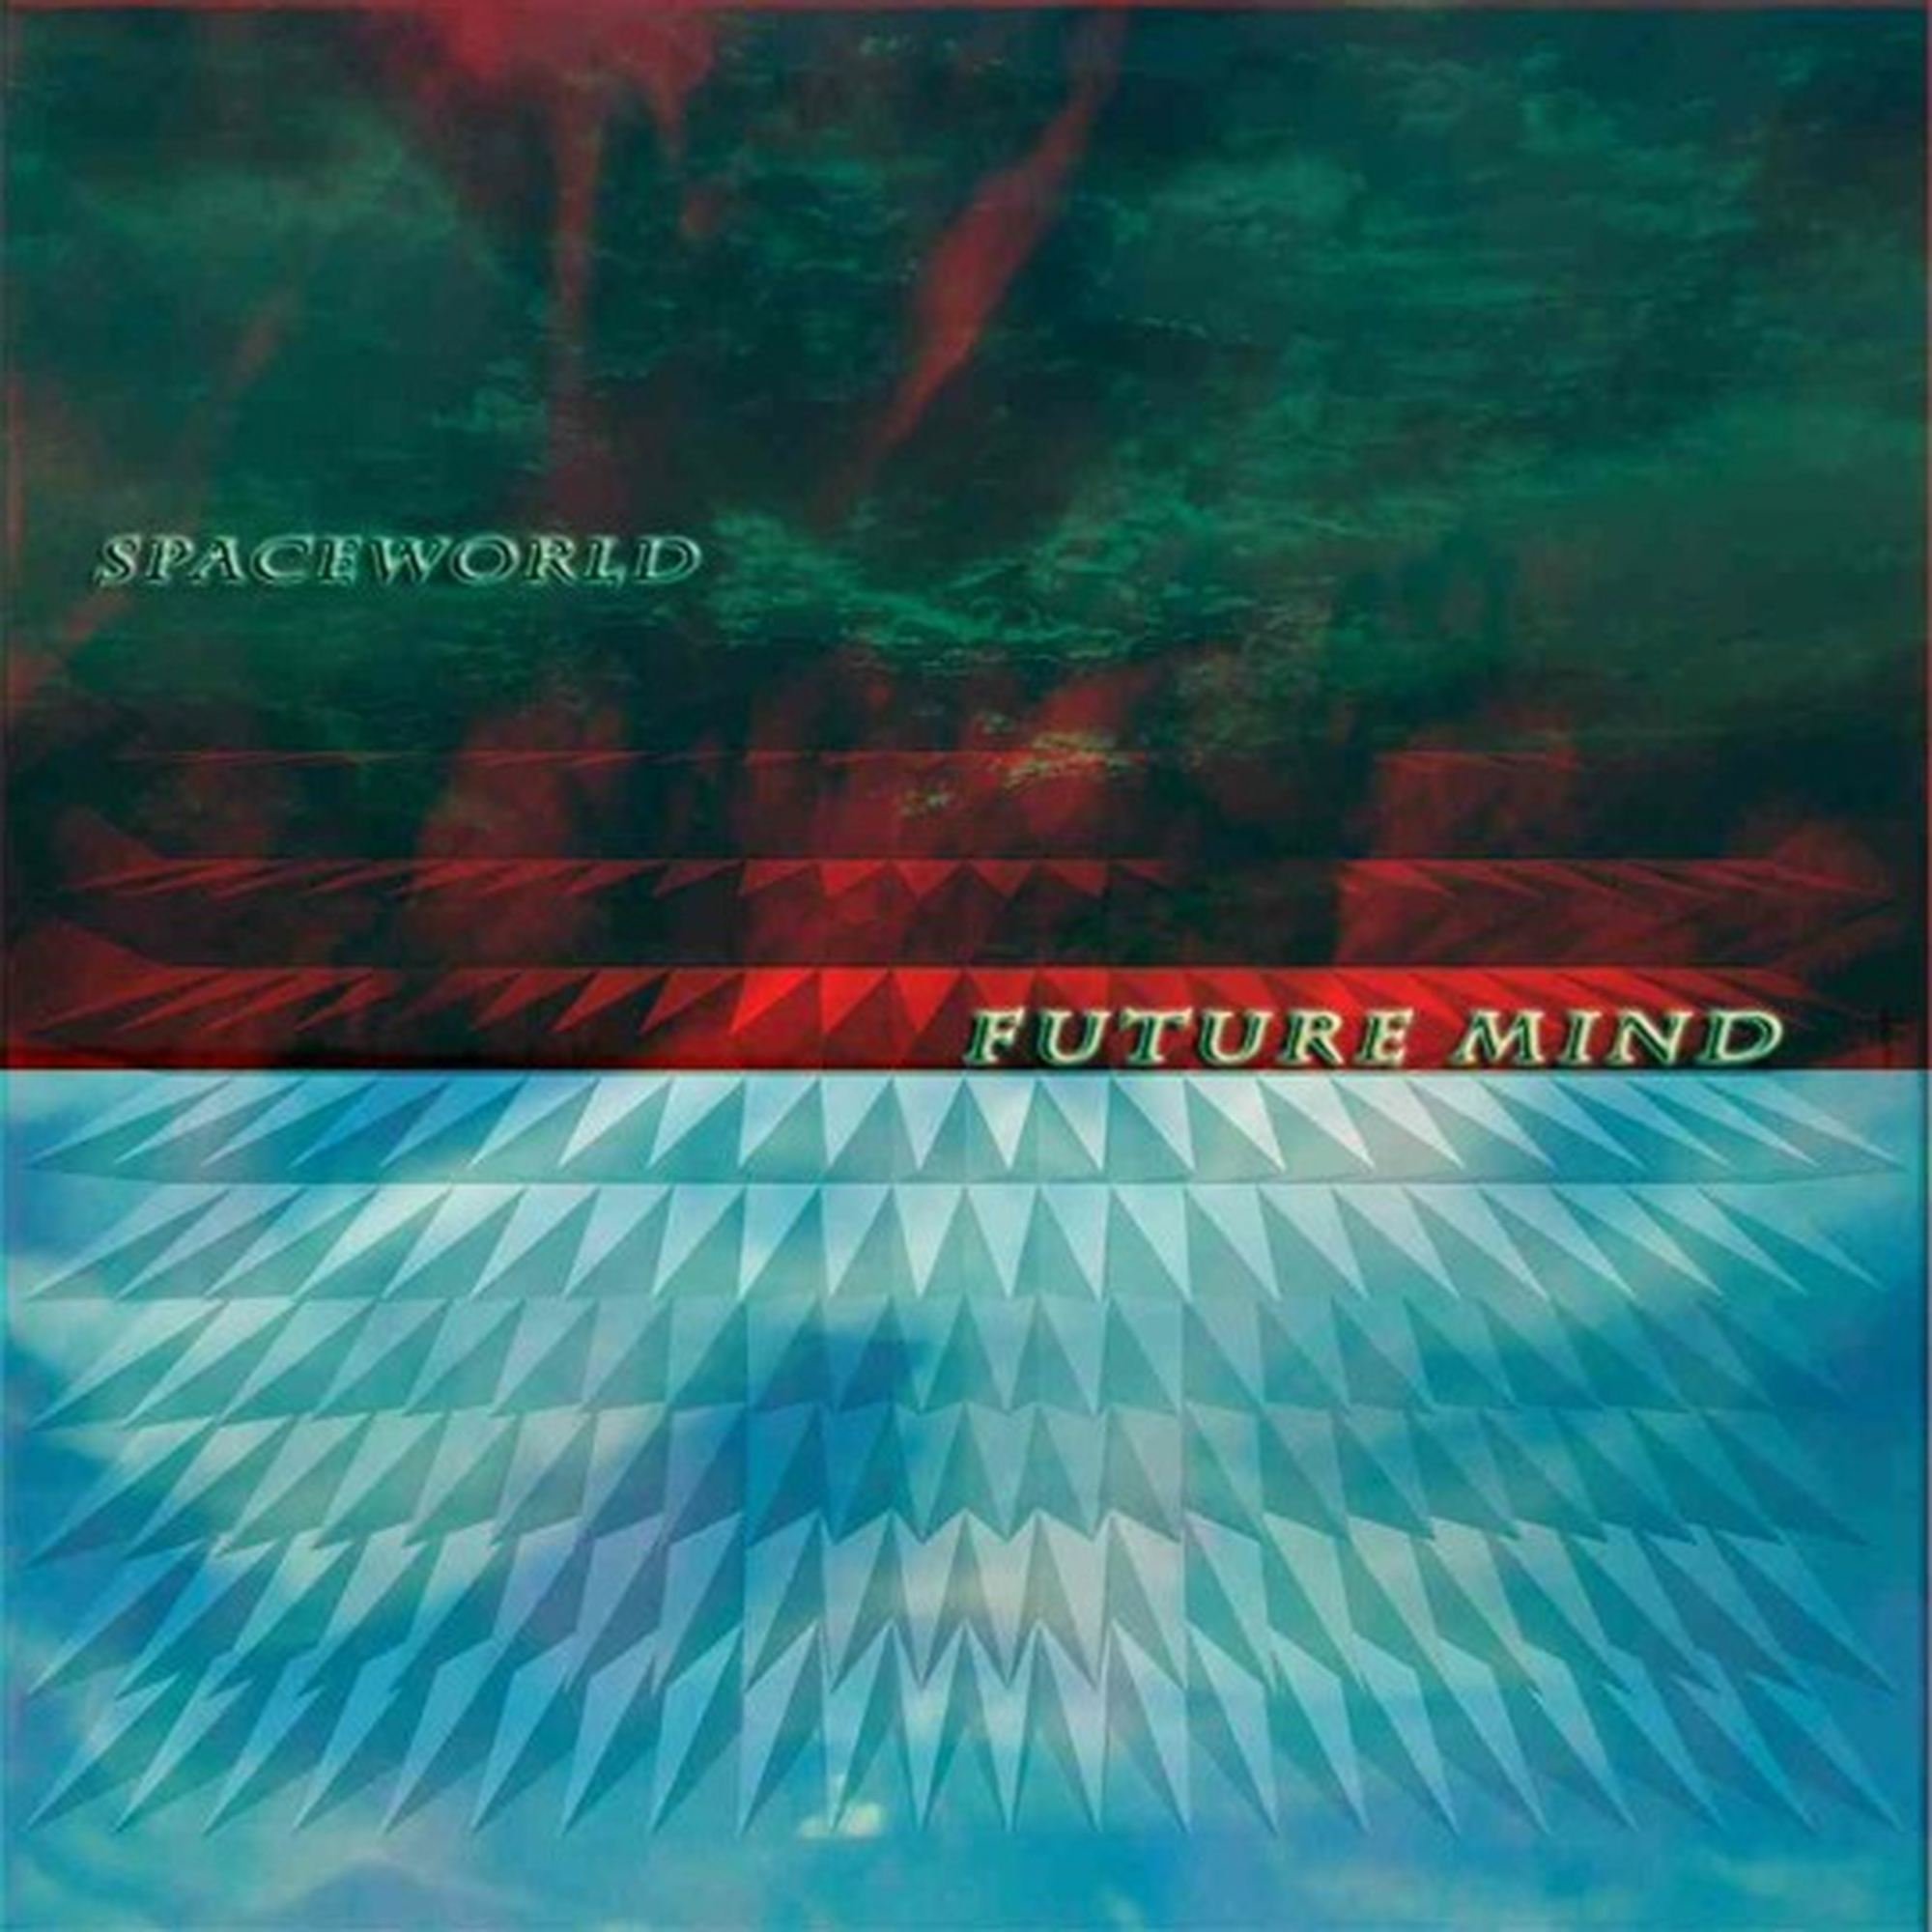 Future-Mind-Spaceworld-1